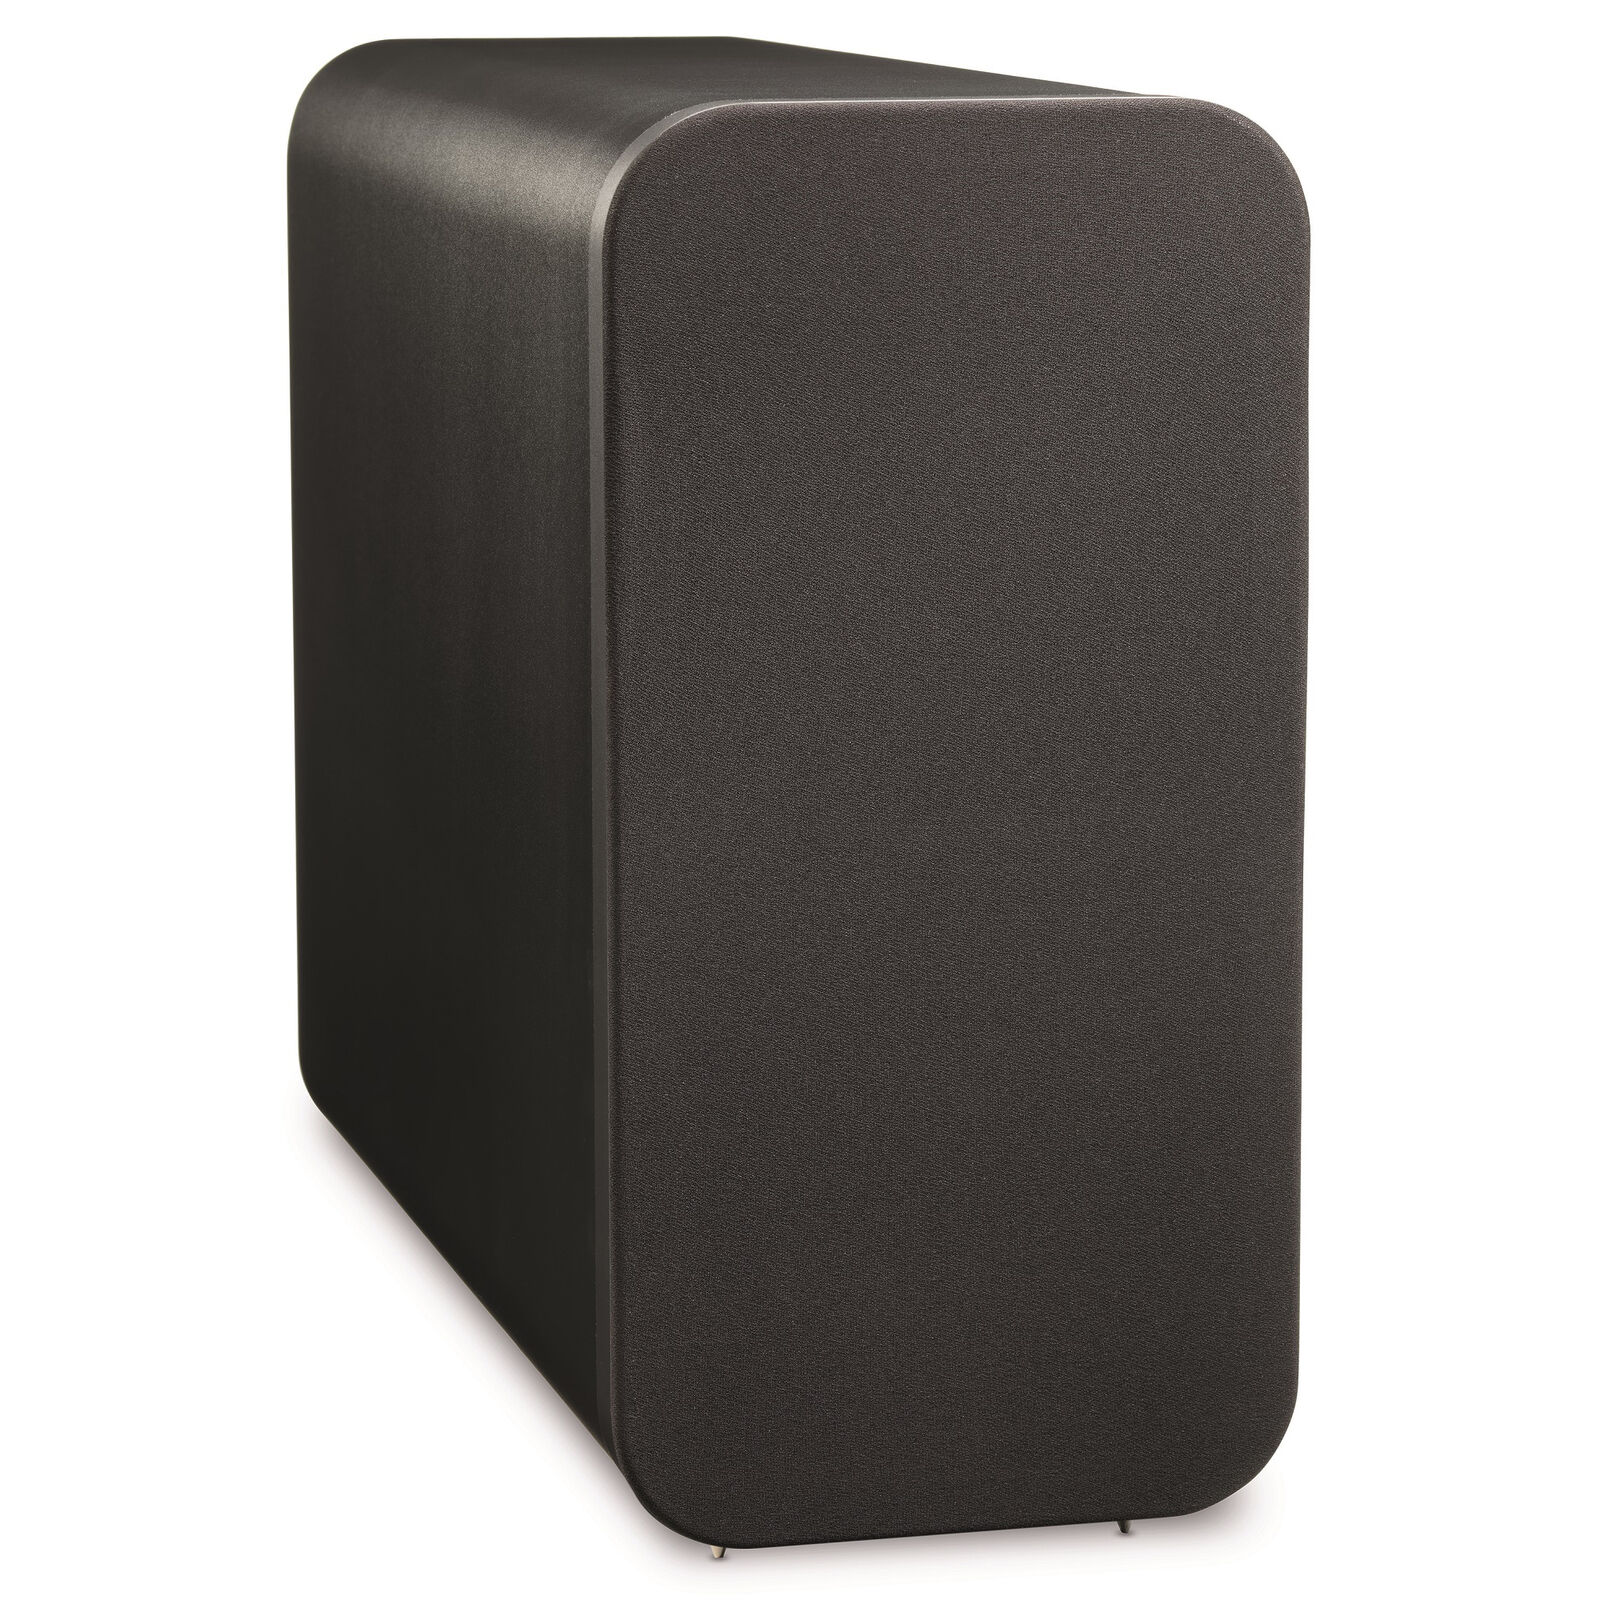 Q Acoustics 3070 Active Subwoofer (Graphite)